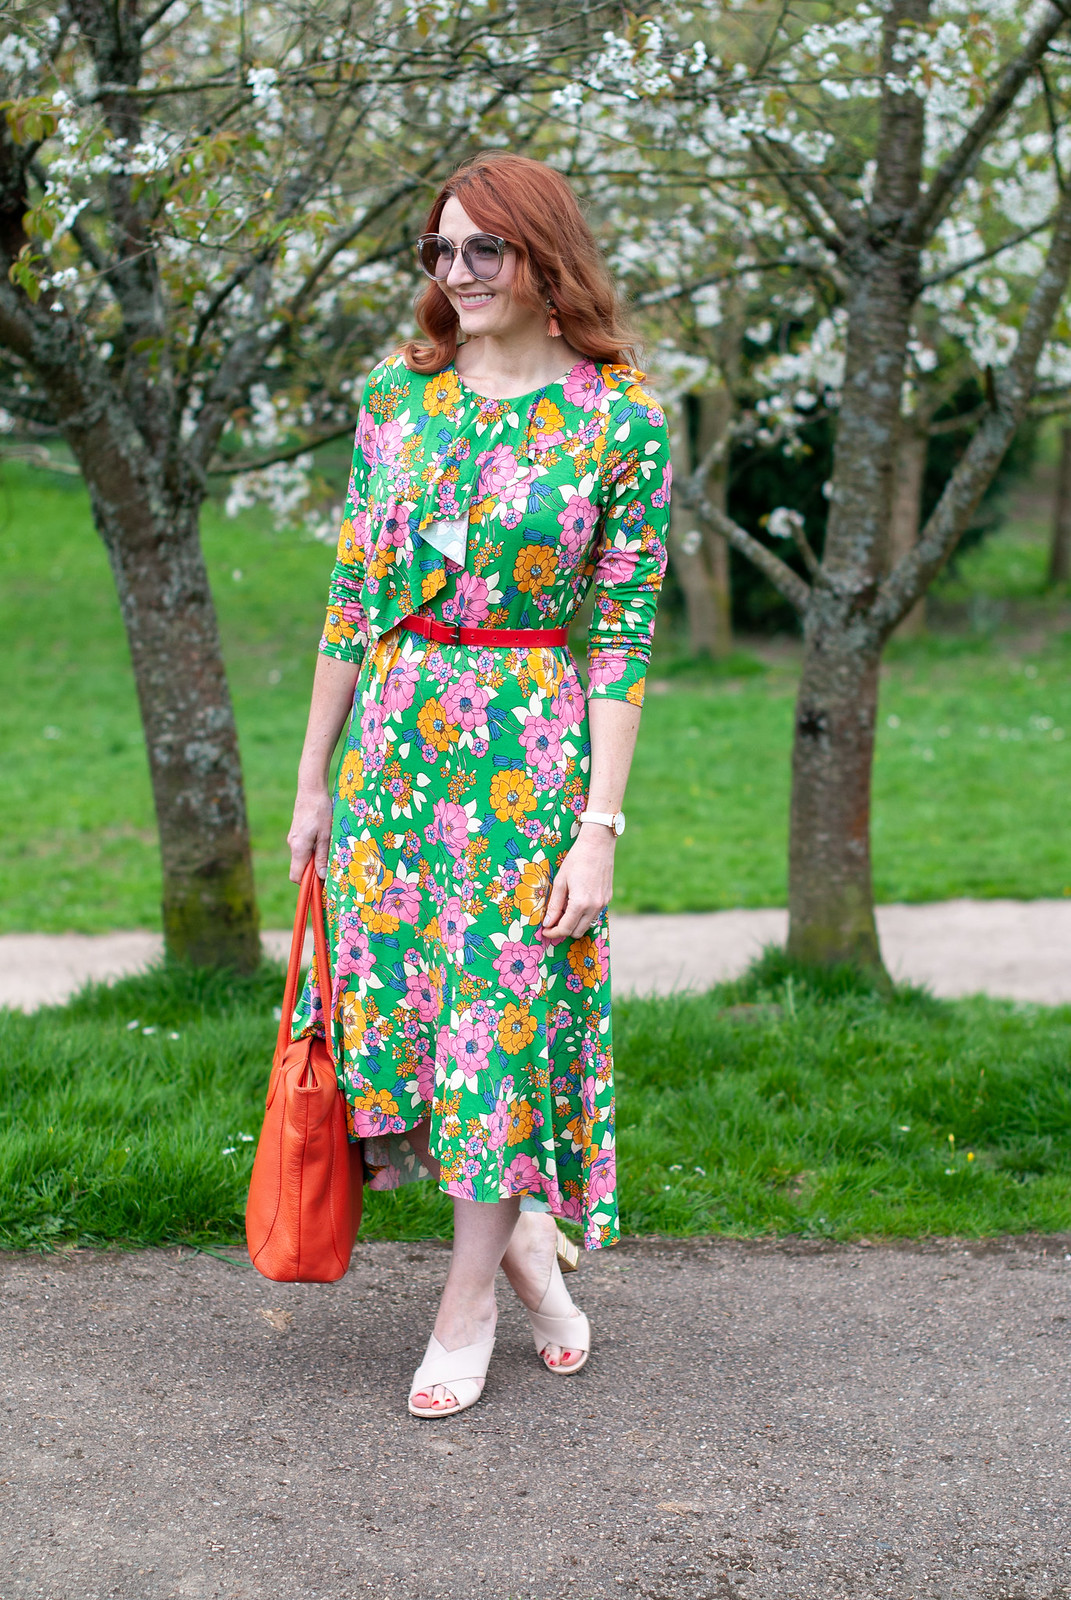 Wearing a Psychedelic Spring Florals Dress: 60 style floral midi dress with asymmetric hem \ summer style \ bright colours \ outfit of the day \ ootd | Not Dressed As Lamb, over 40 style